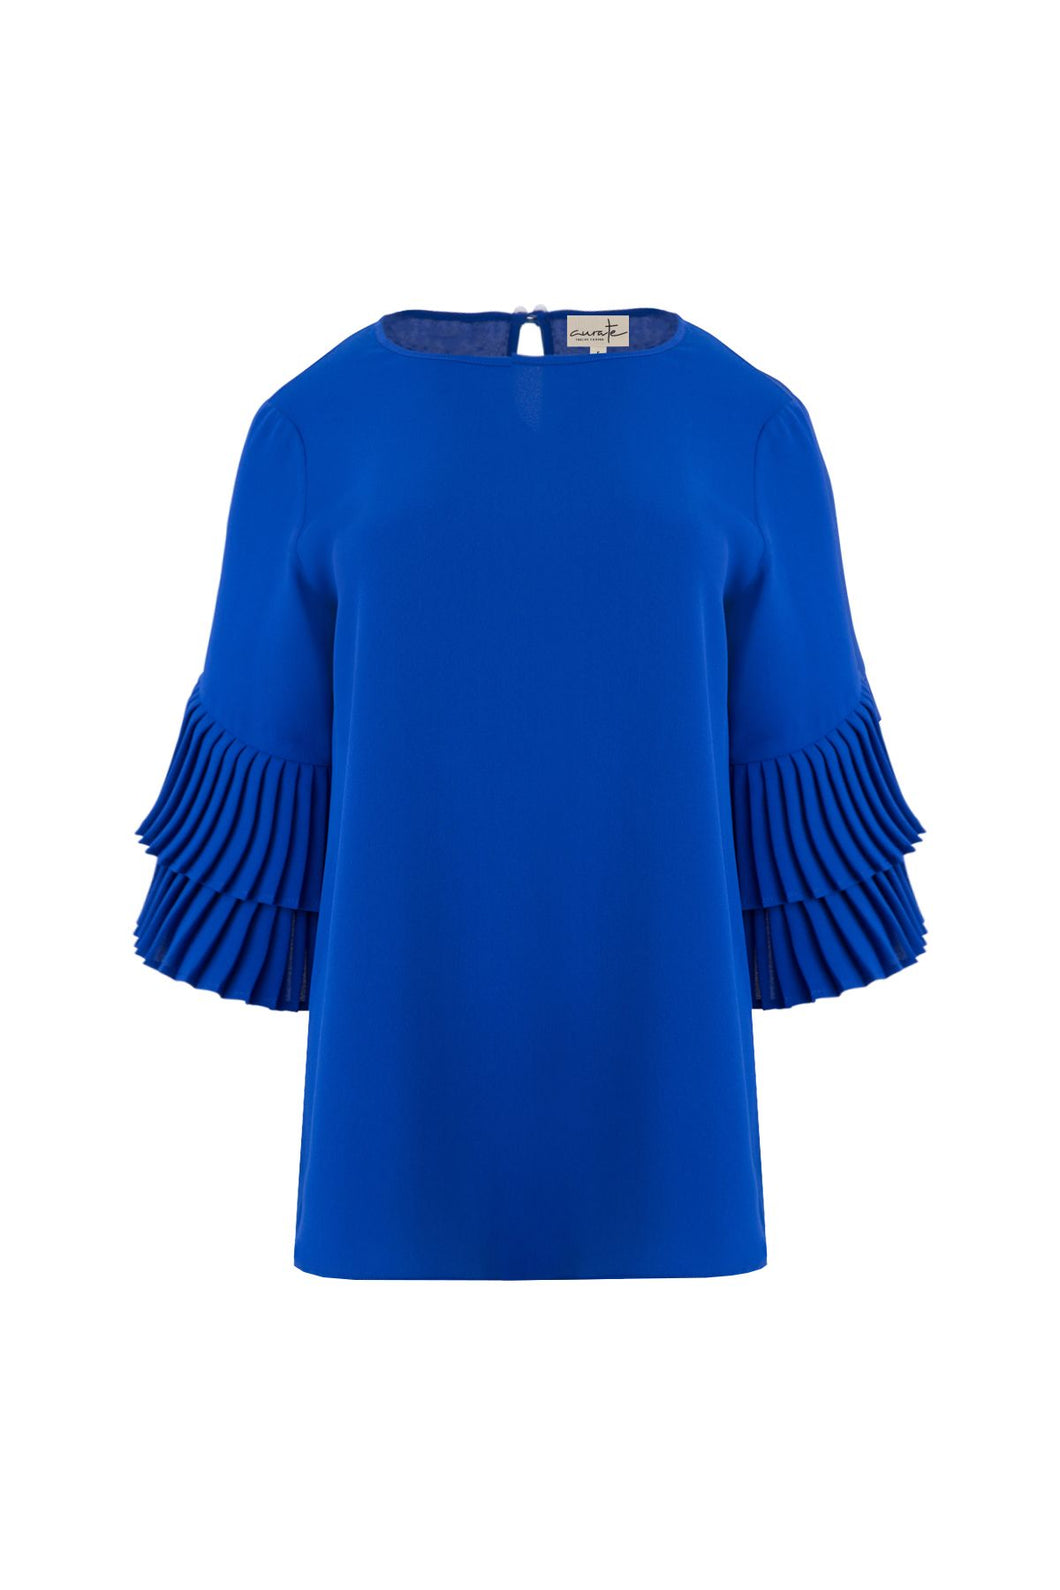 CURATE by Trelise Cooper - Take Crepe Top in Cobalt